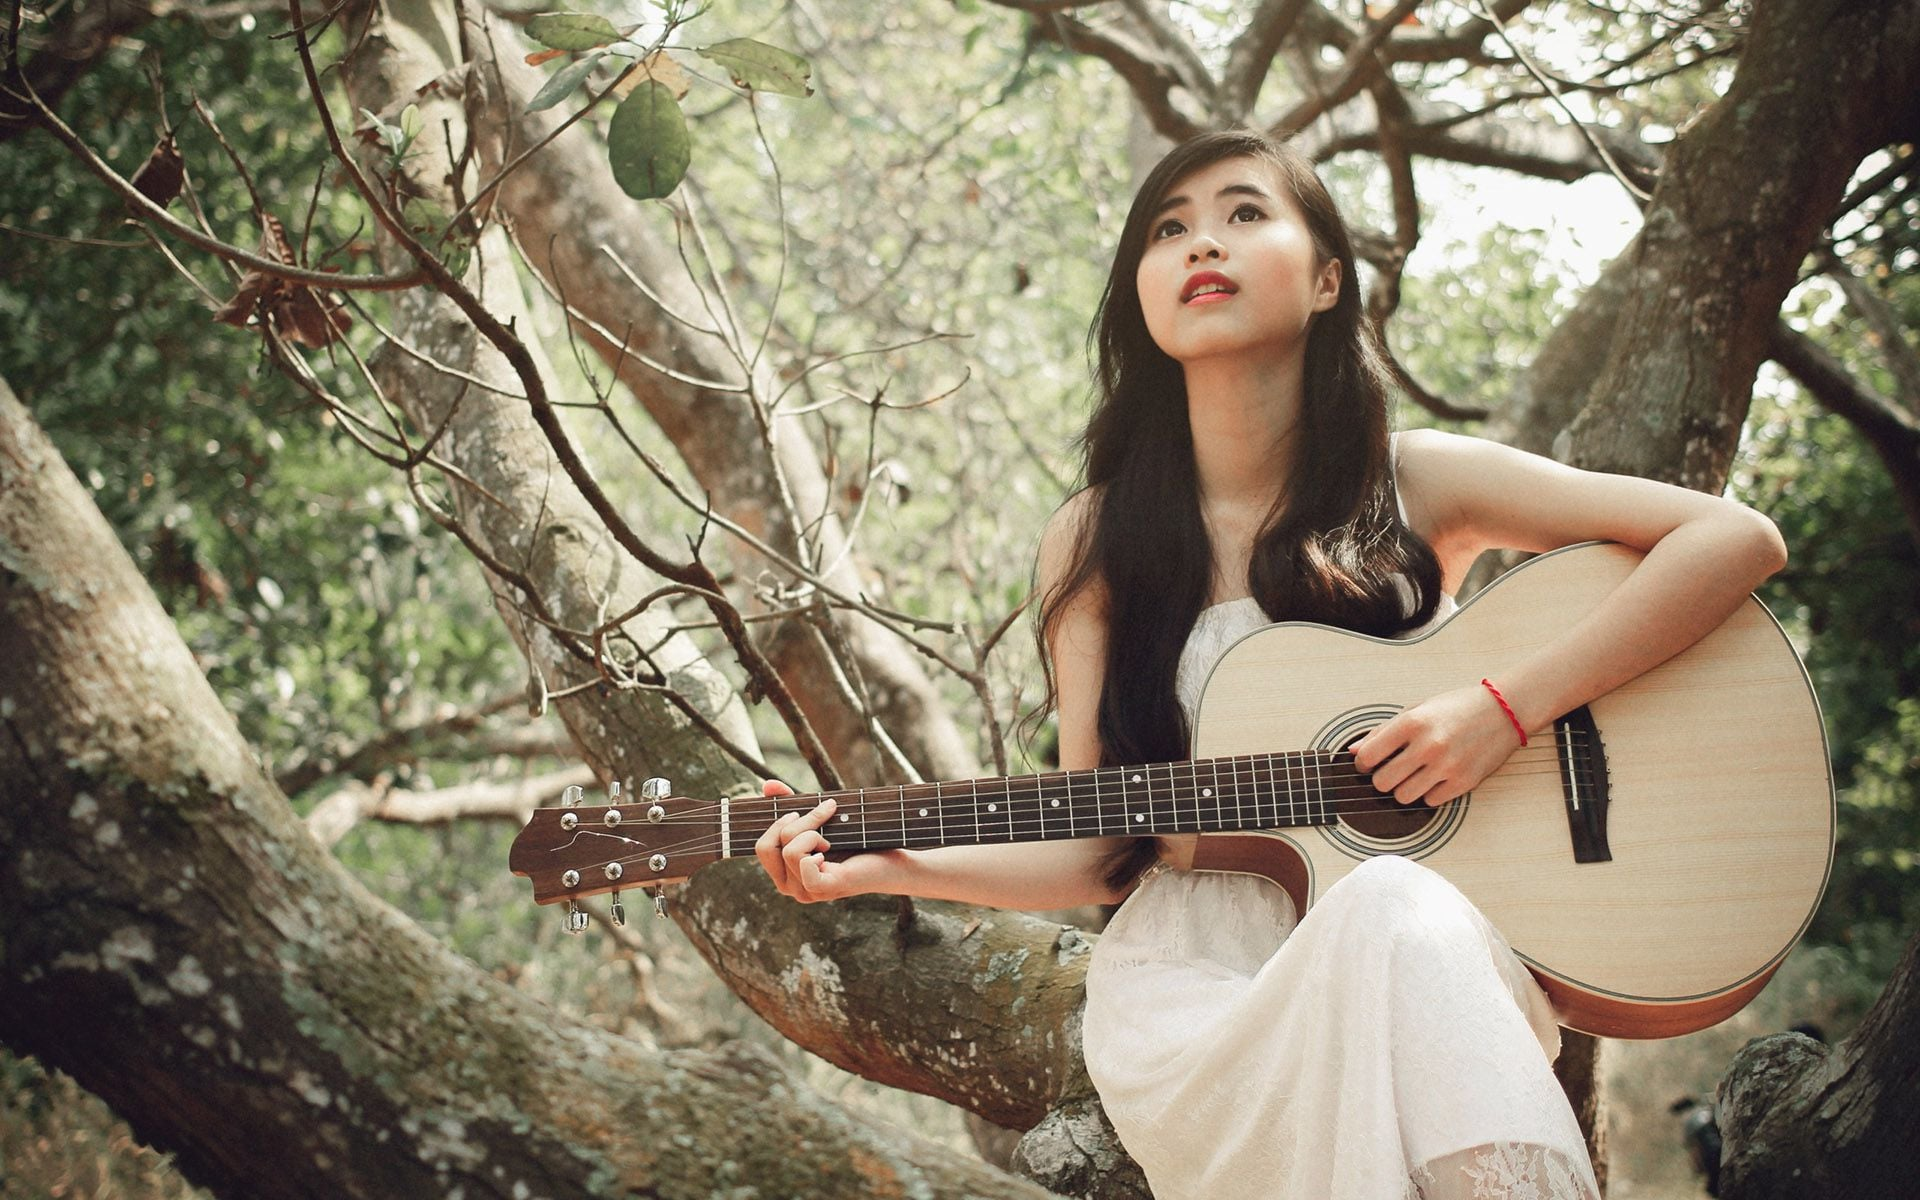 Vampire Love Quotes Wallpaper Wallpapers Girl With Guitar Hd Download